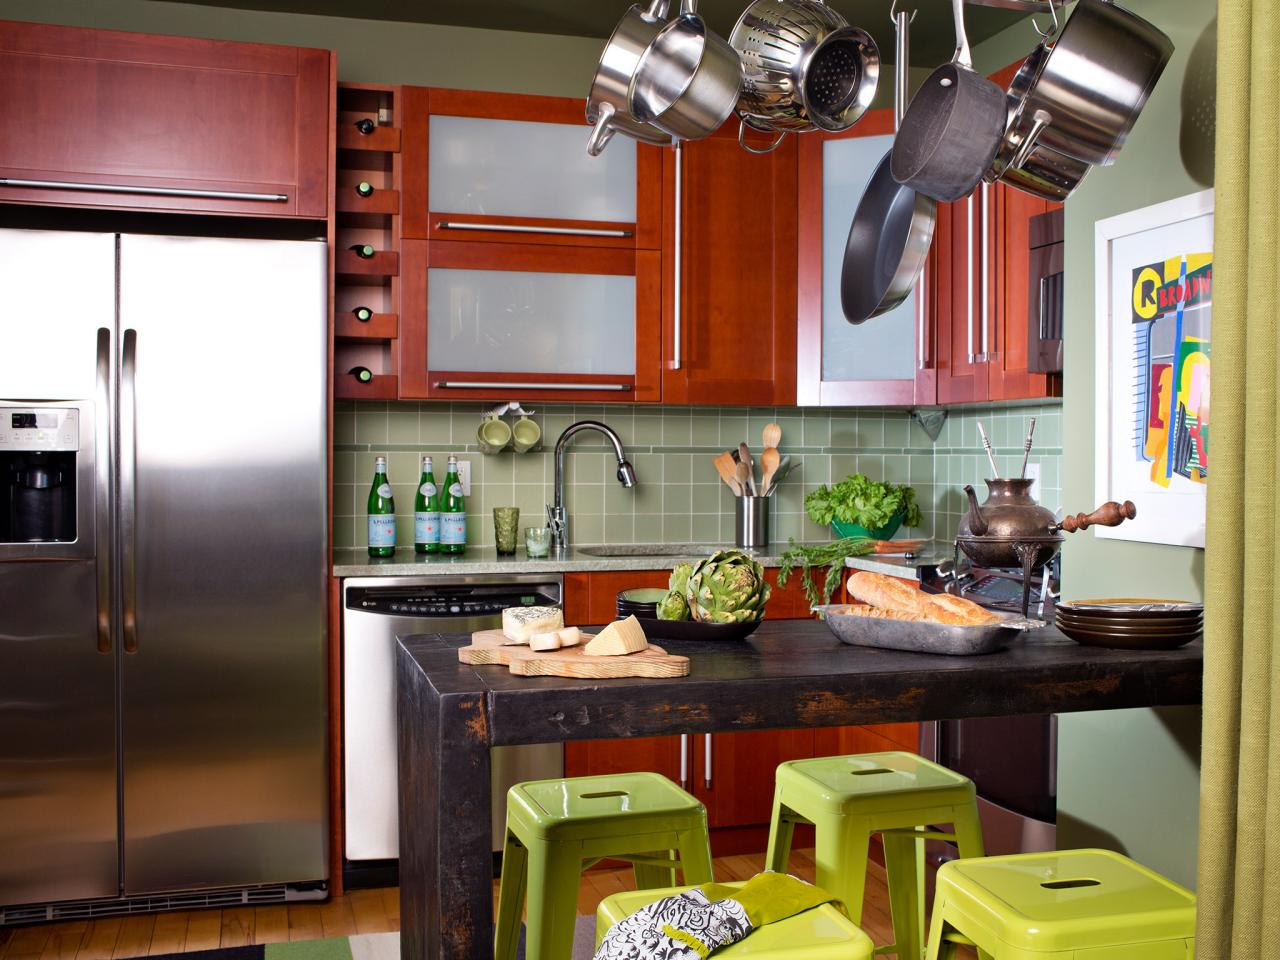 Small kitchen cabinets pictures ideas tips from hgtv for Great kitchen design ideas